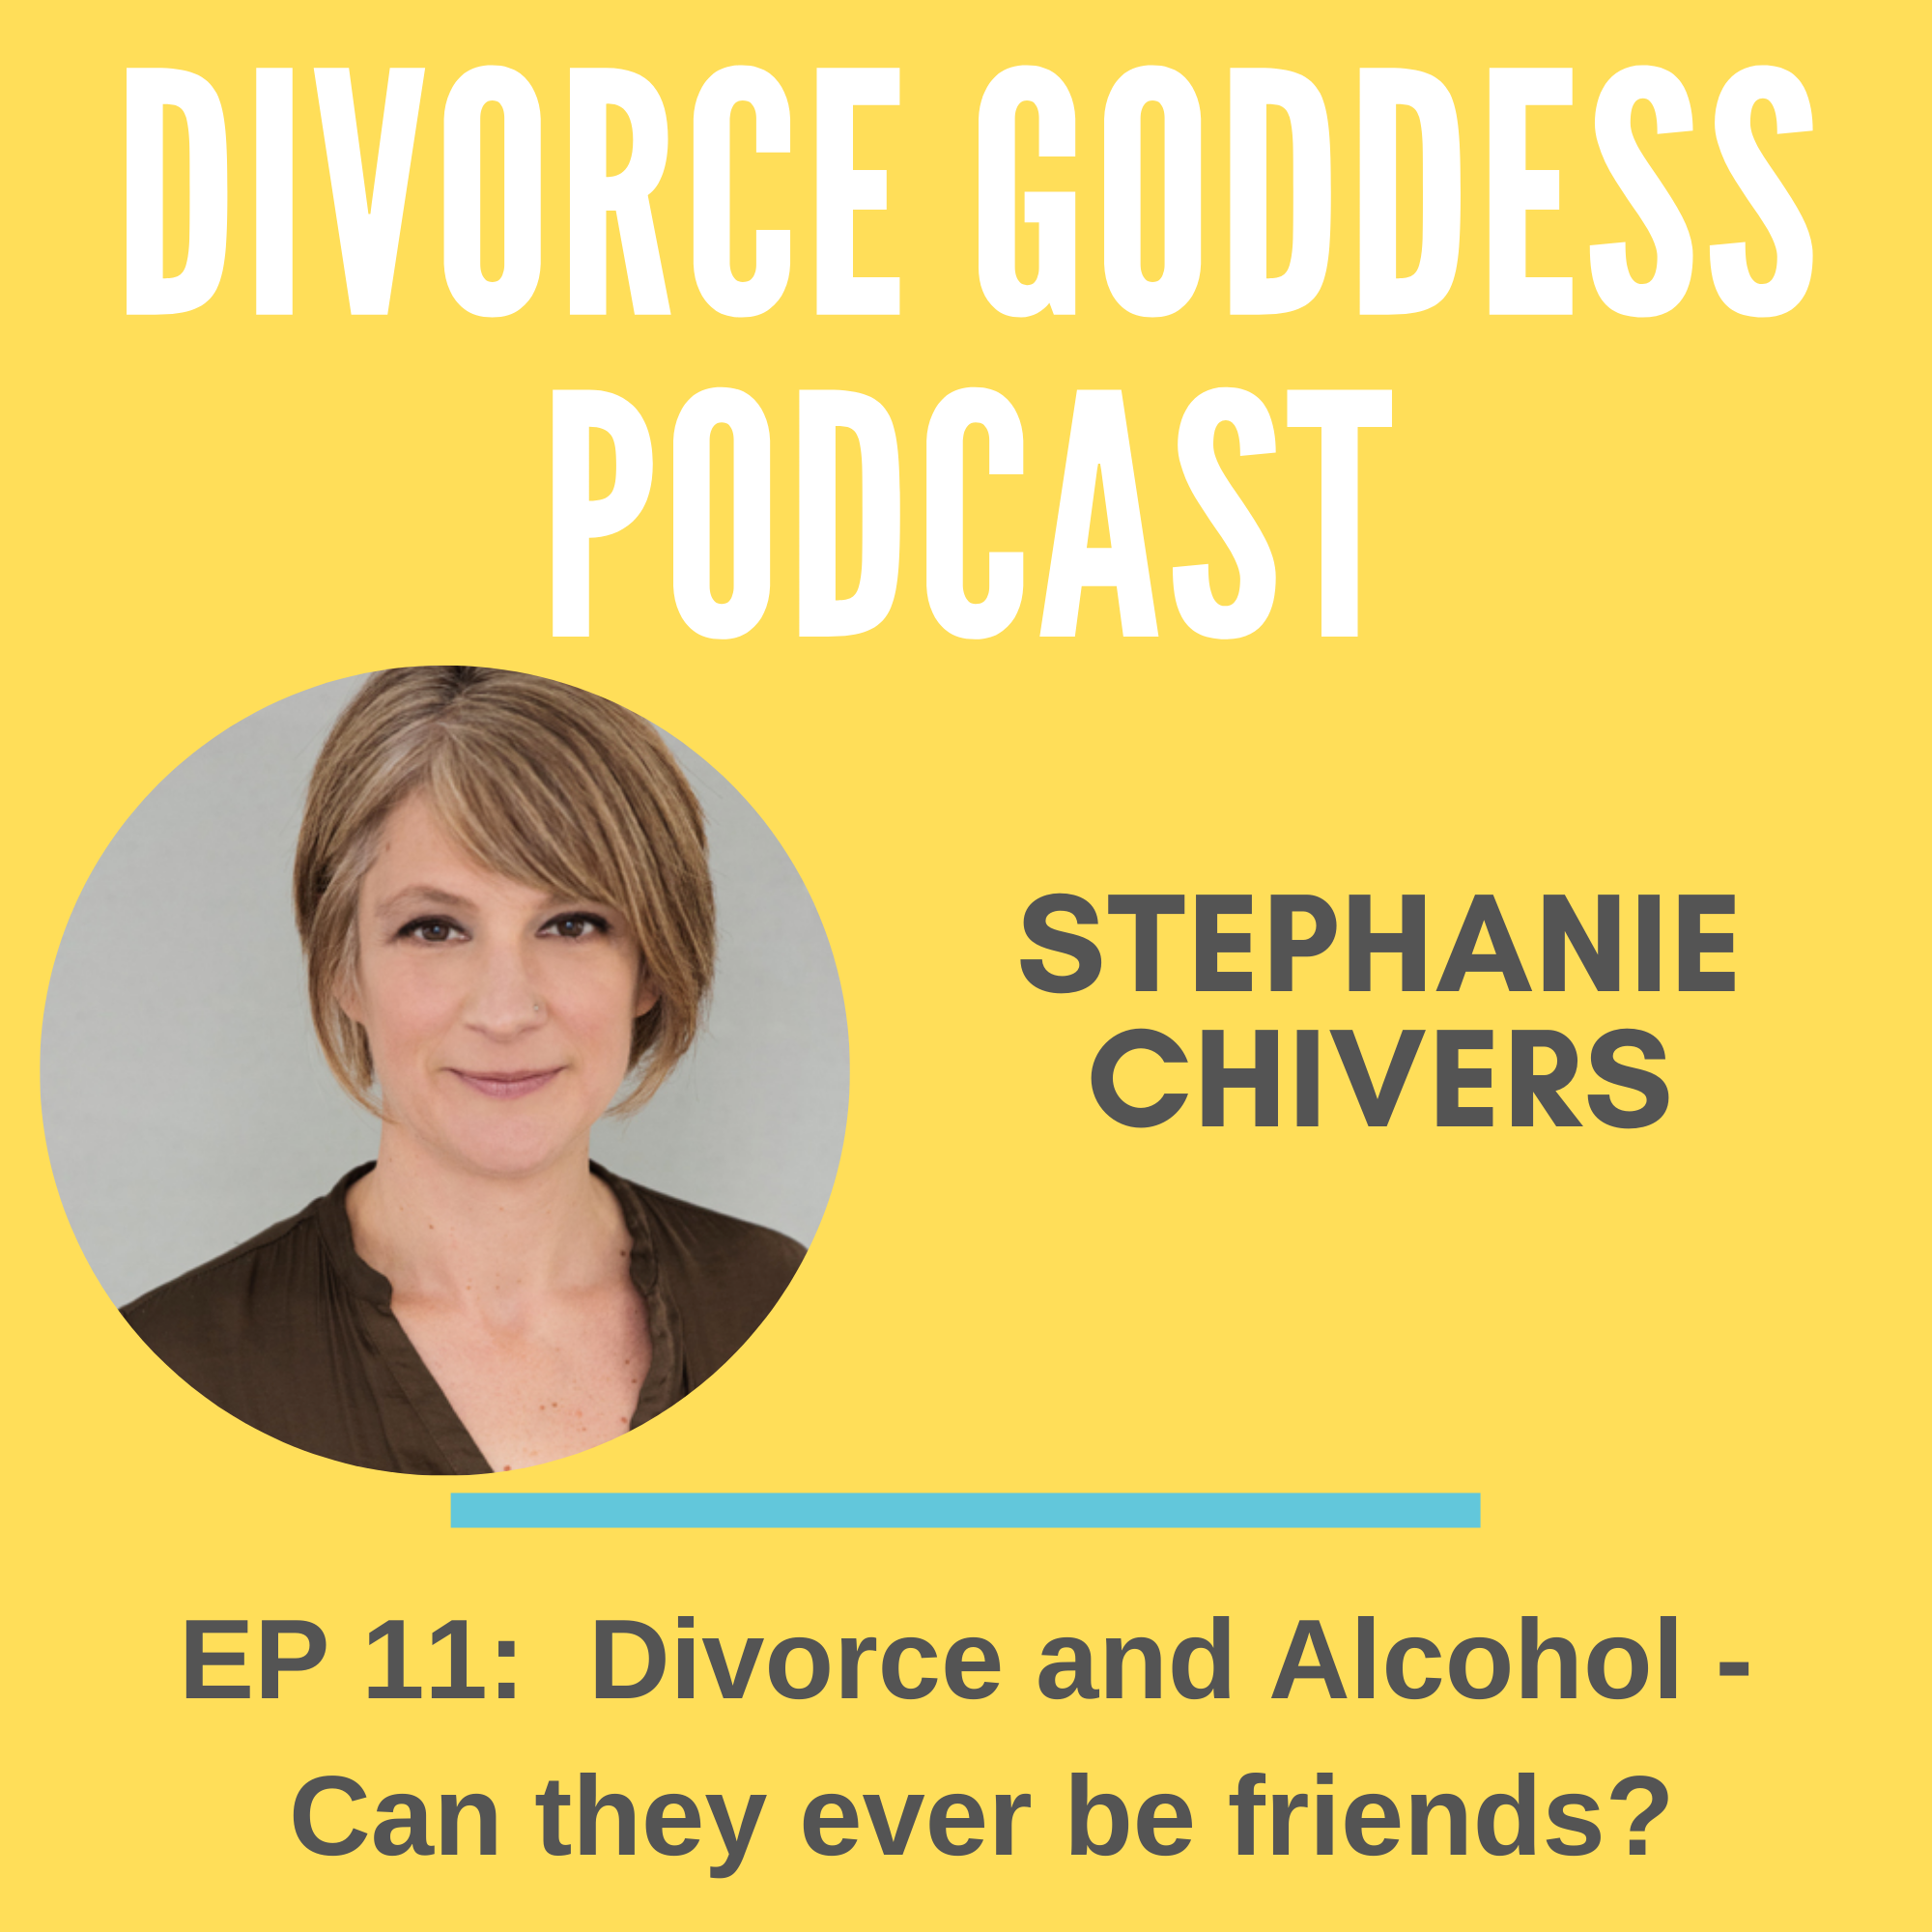 Divorce Goddess Podcast - Divorce and Alcohol - Can they ever be friends?